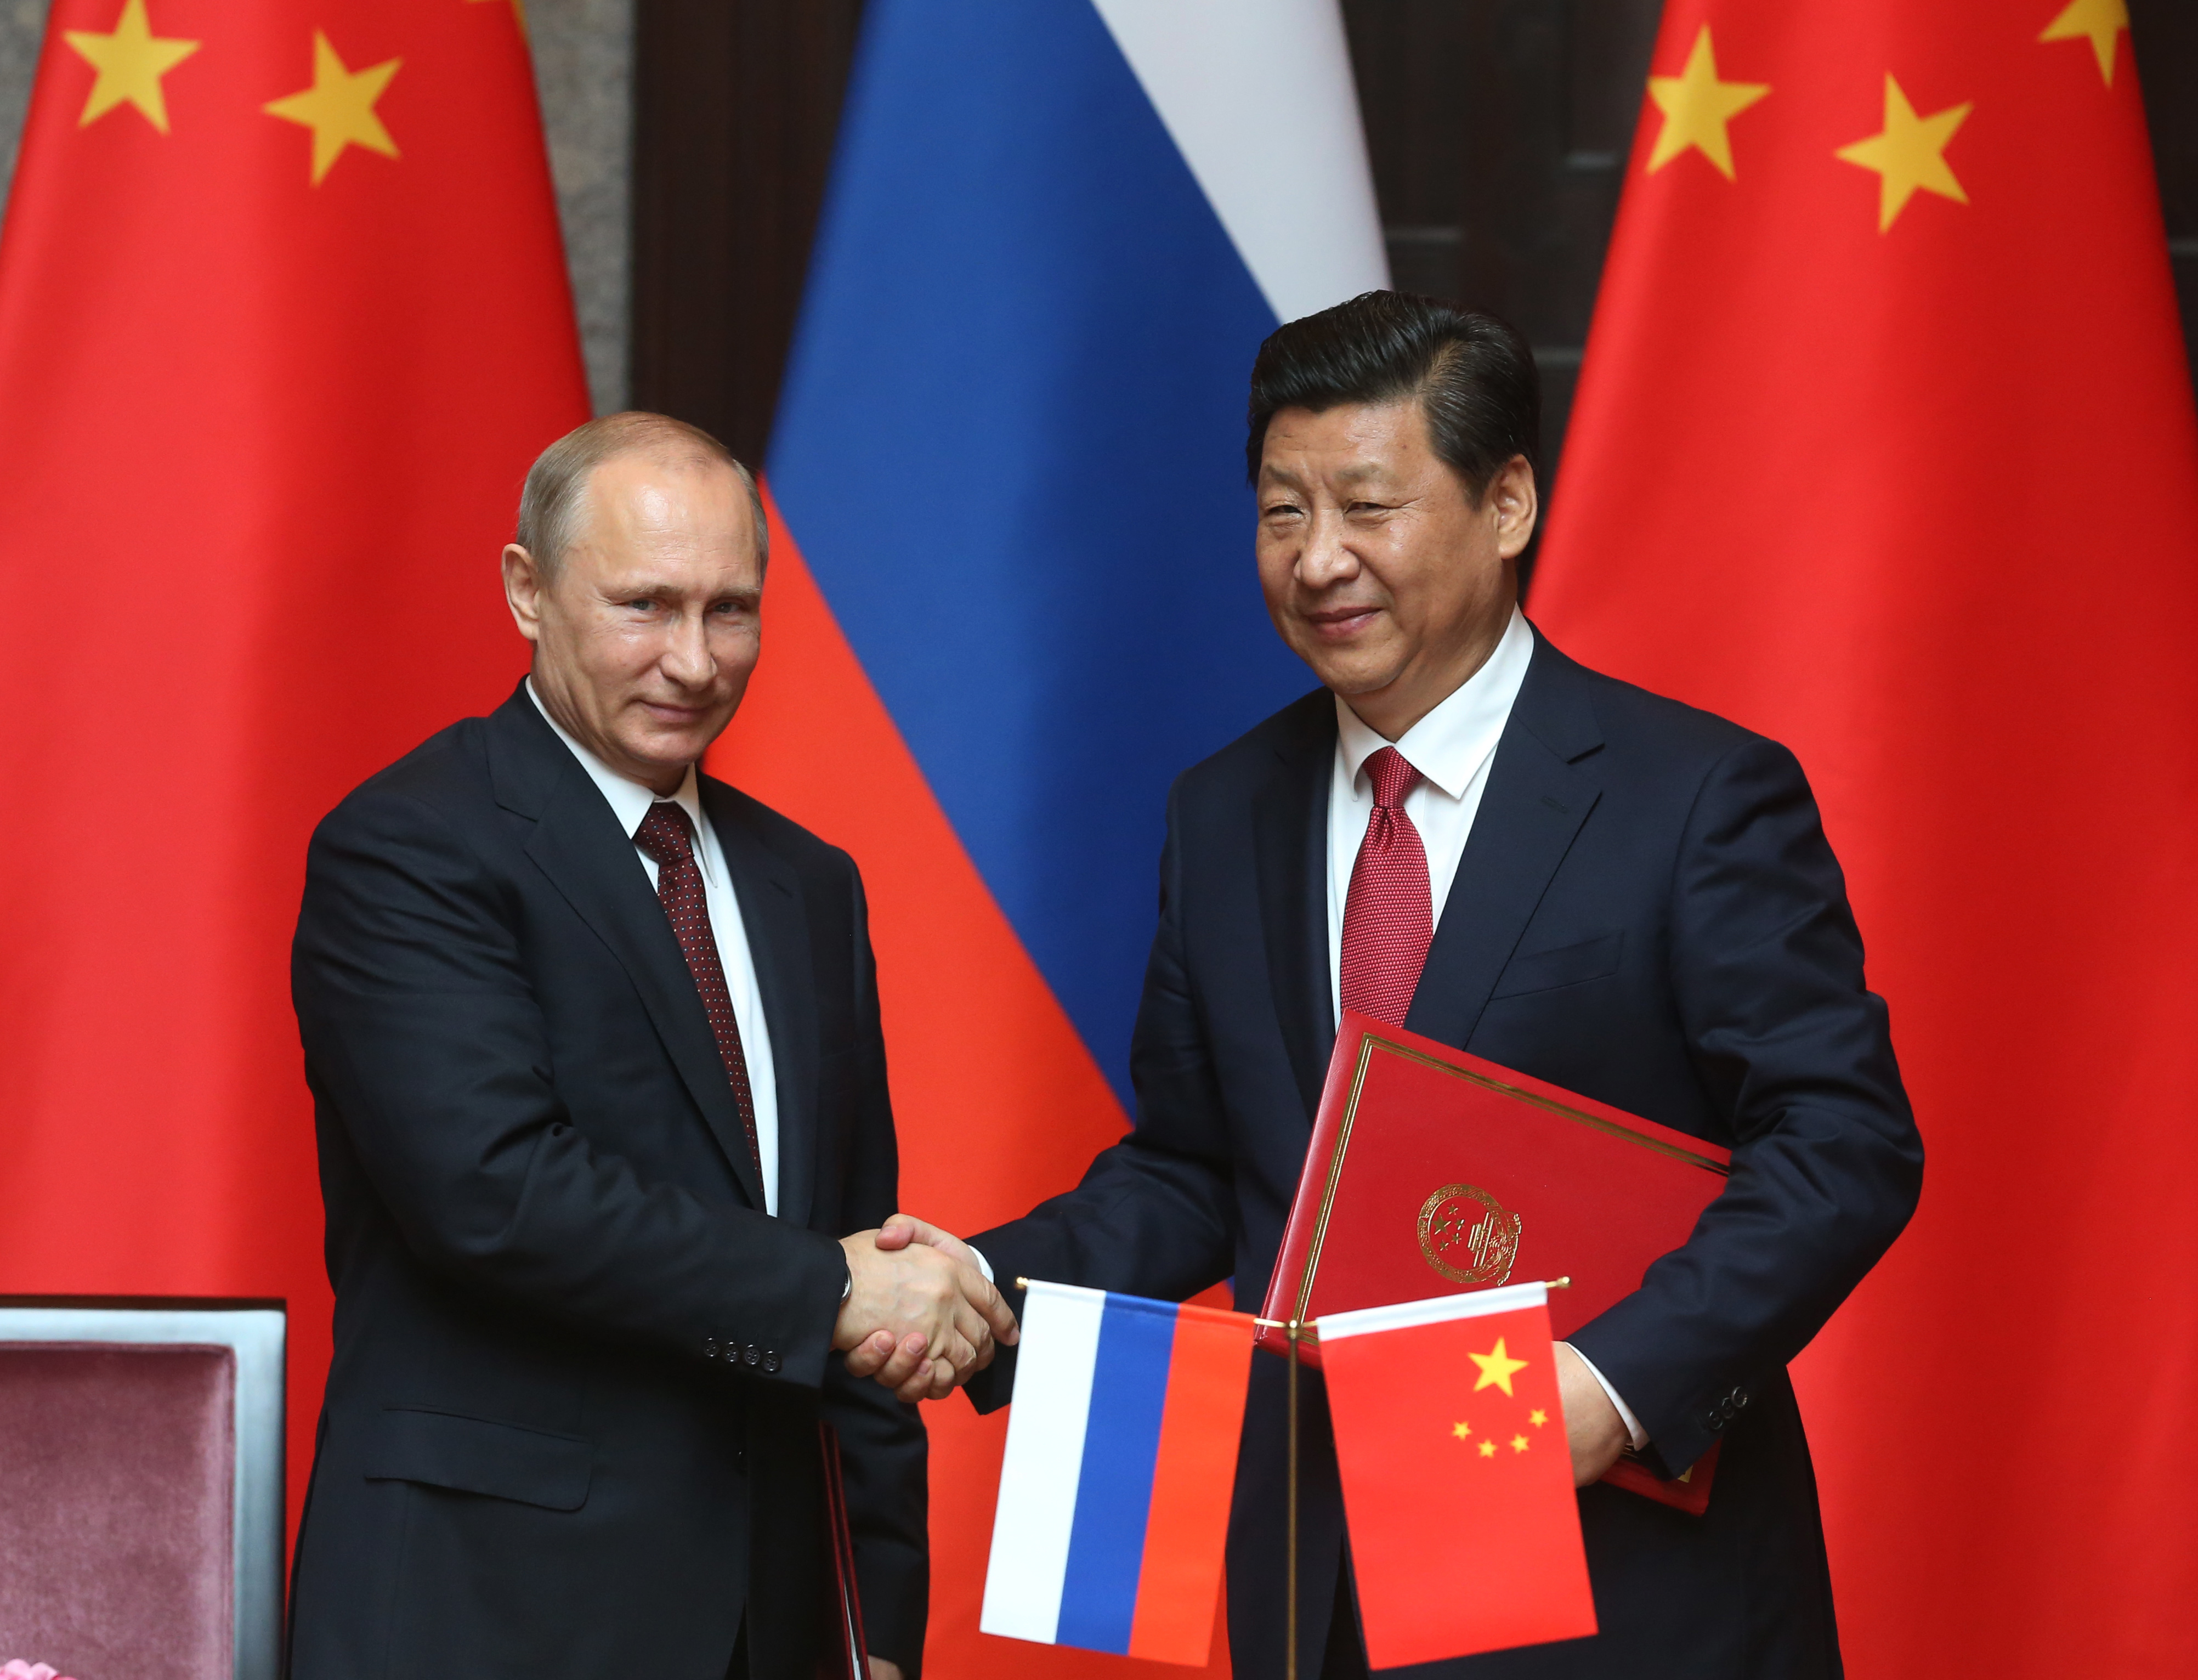 Russian President Vladimir Putin and Chinese President Xi Jingping attend a welcoming ceremony on May 20, 2014 in Shanghai